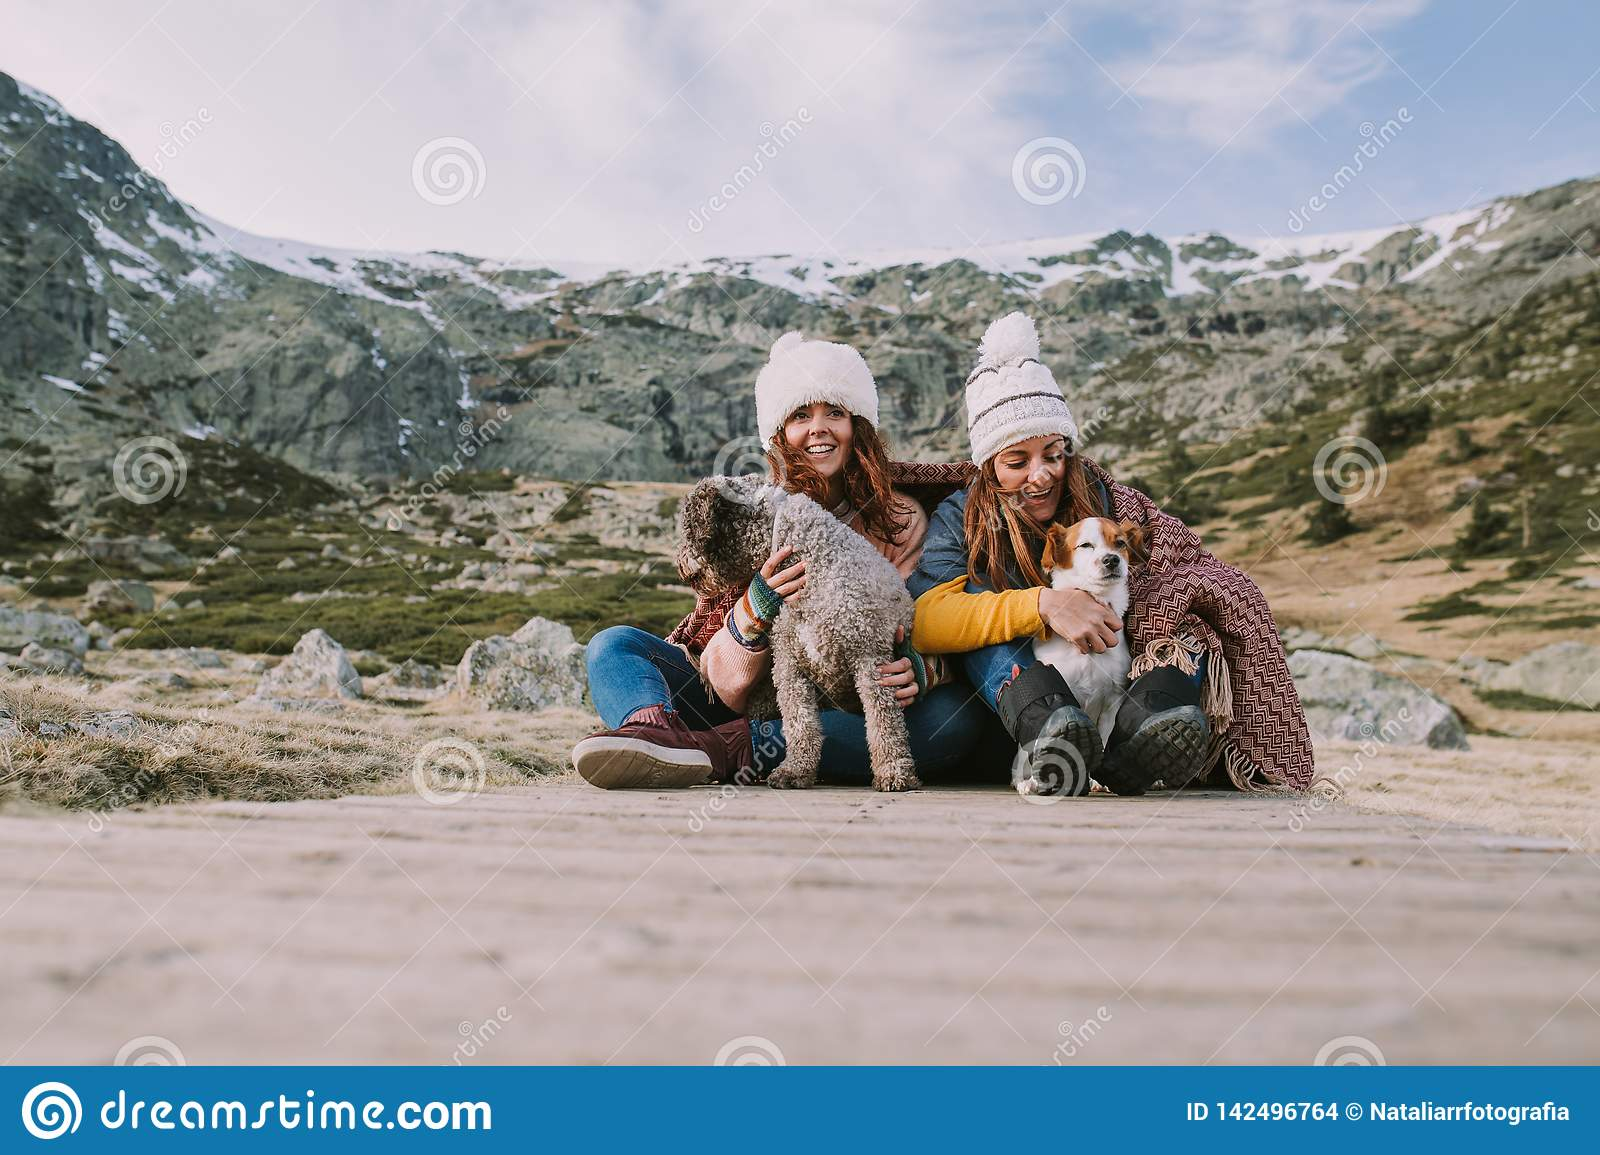 Two young women play with their dogs in the middle of the meadow